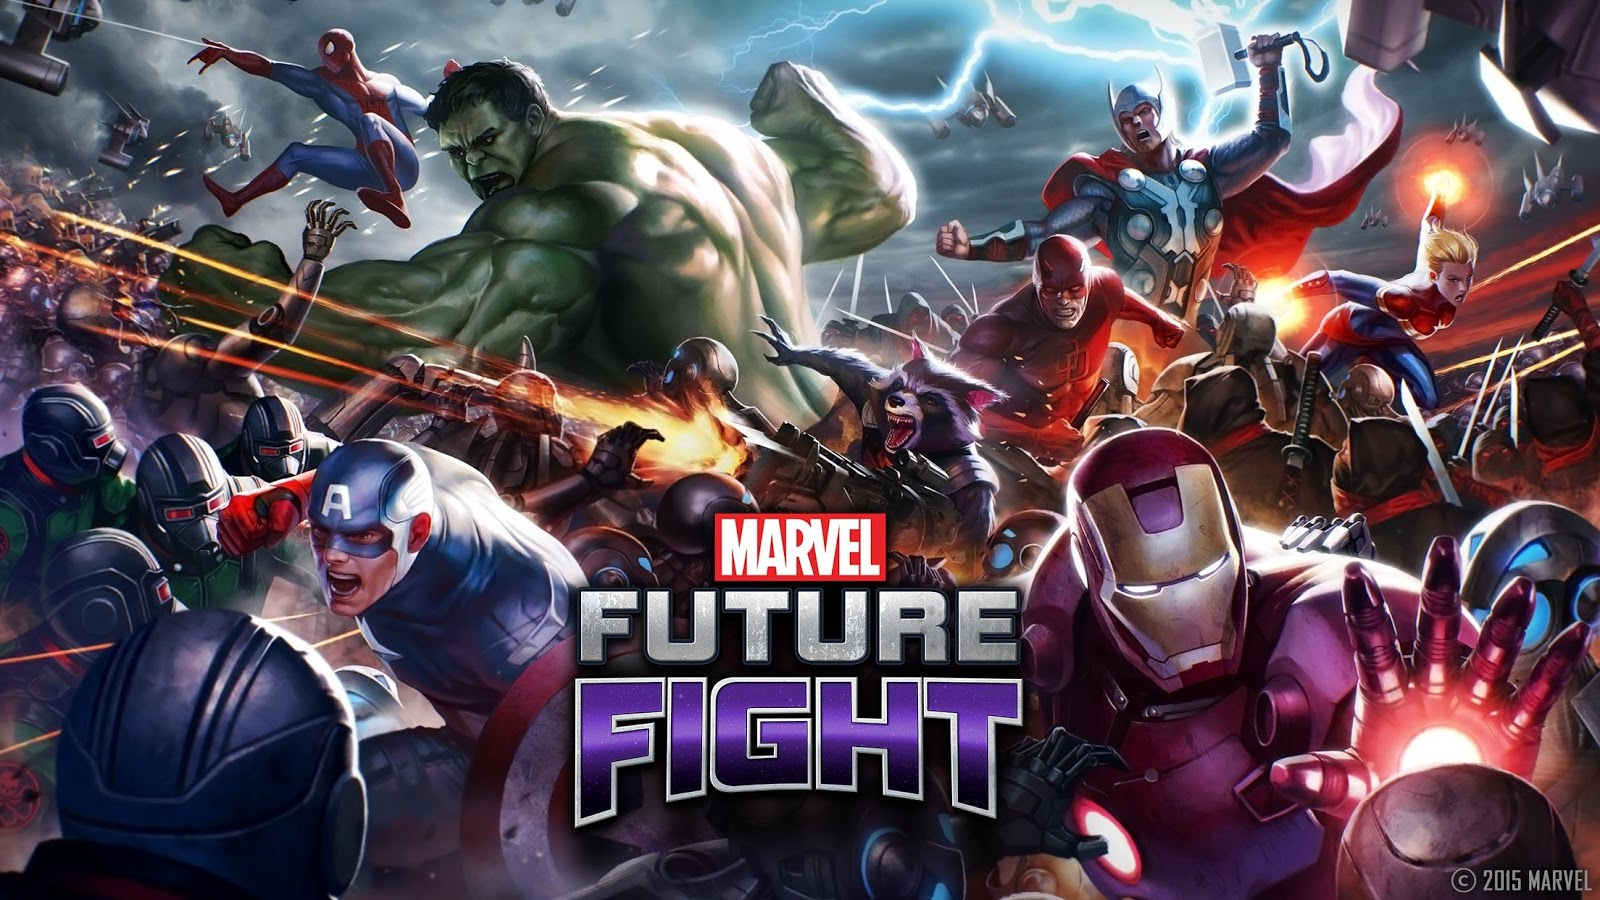 Marvel Future Fight|Best Game On Play Store